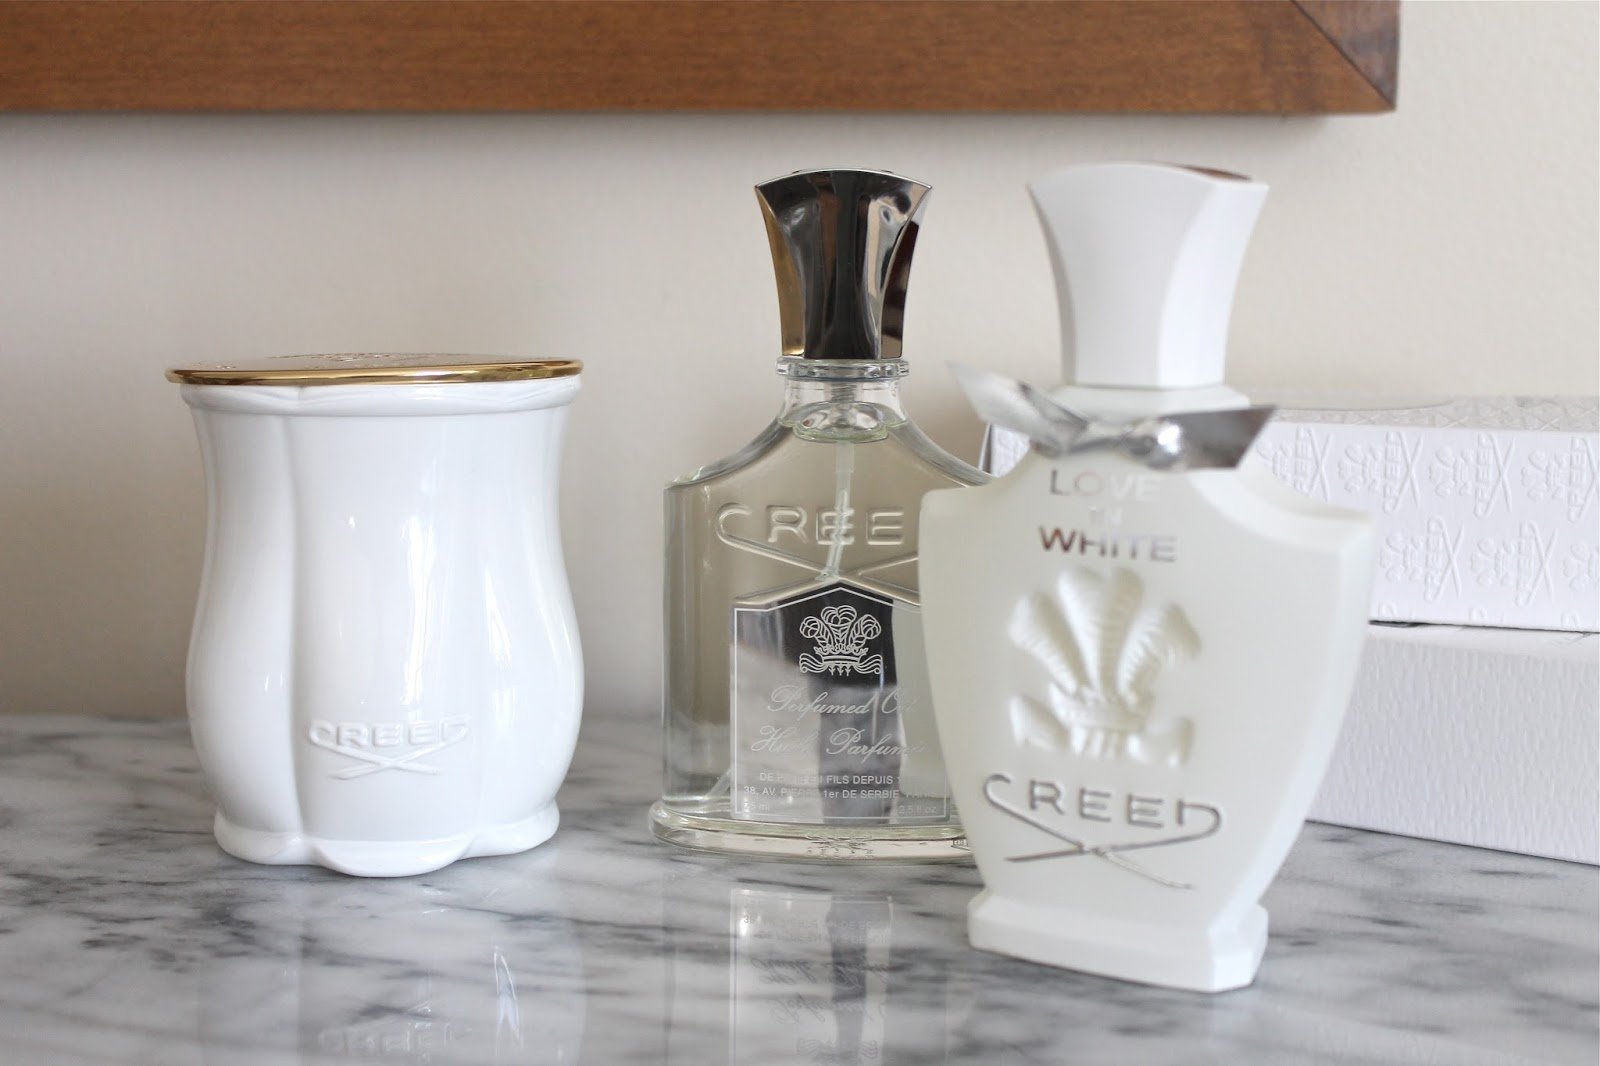 CREED THE AMOUR COLLECTION